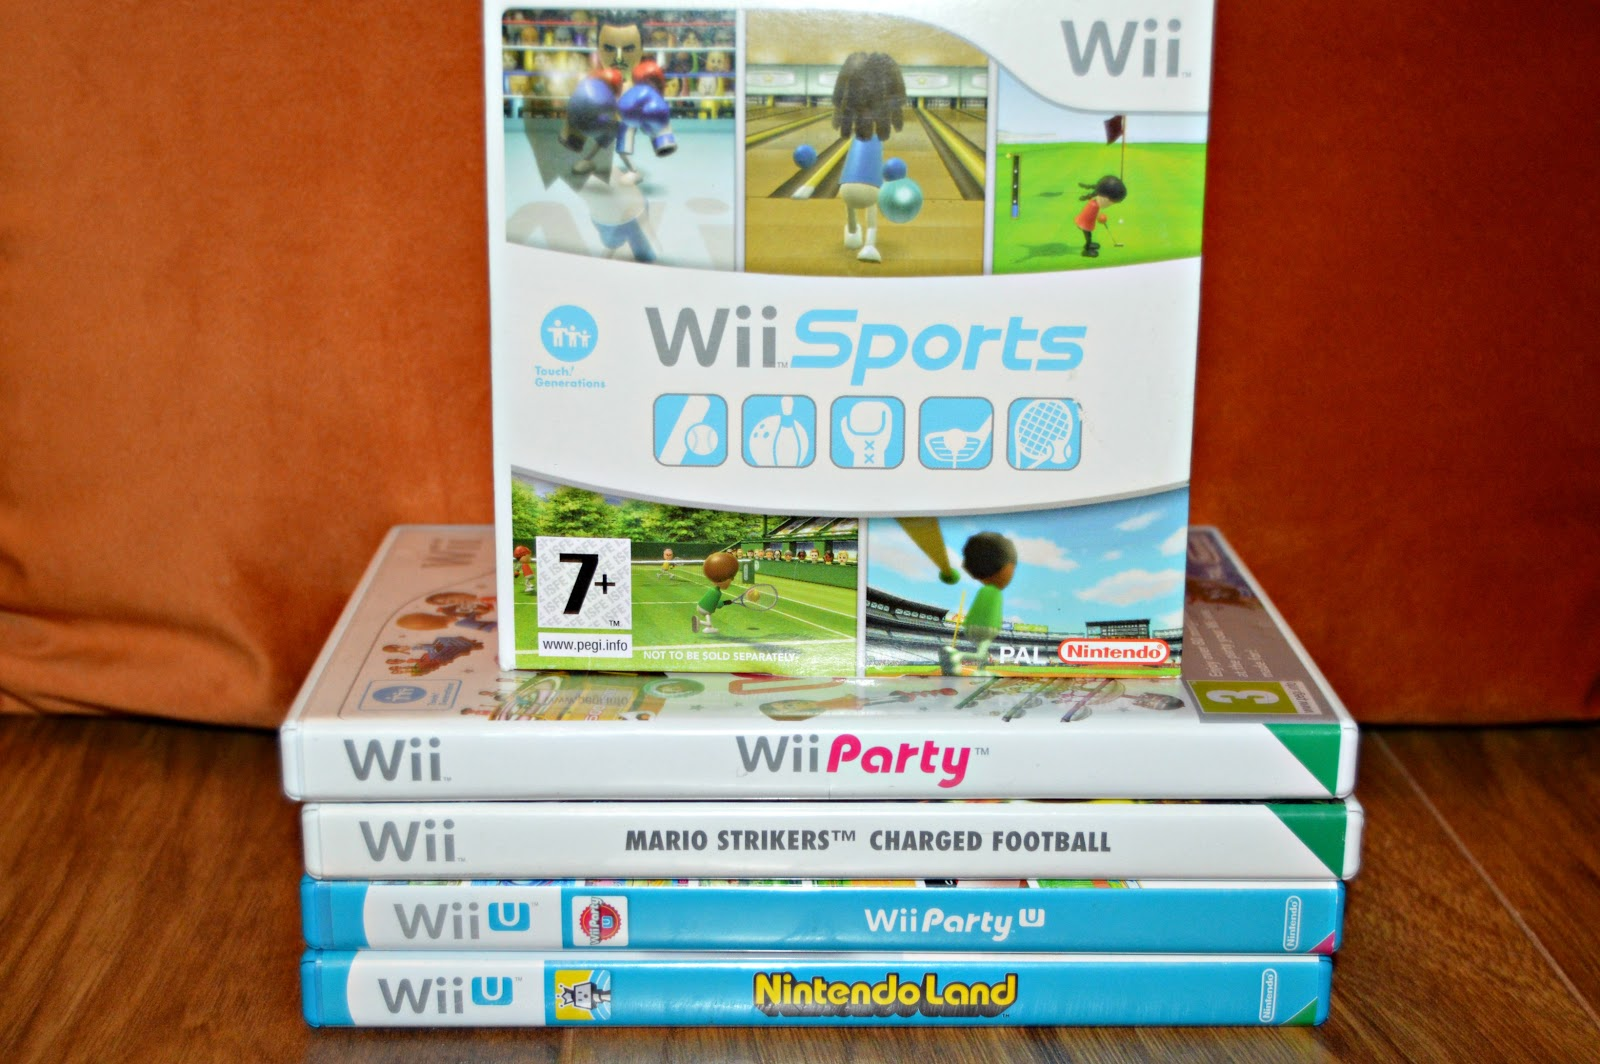 A selection of Wii Games